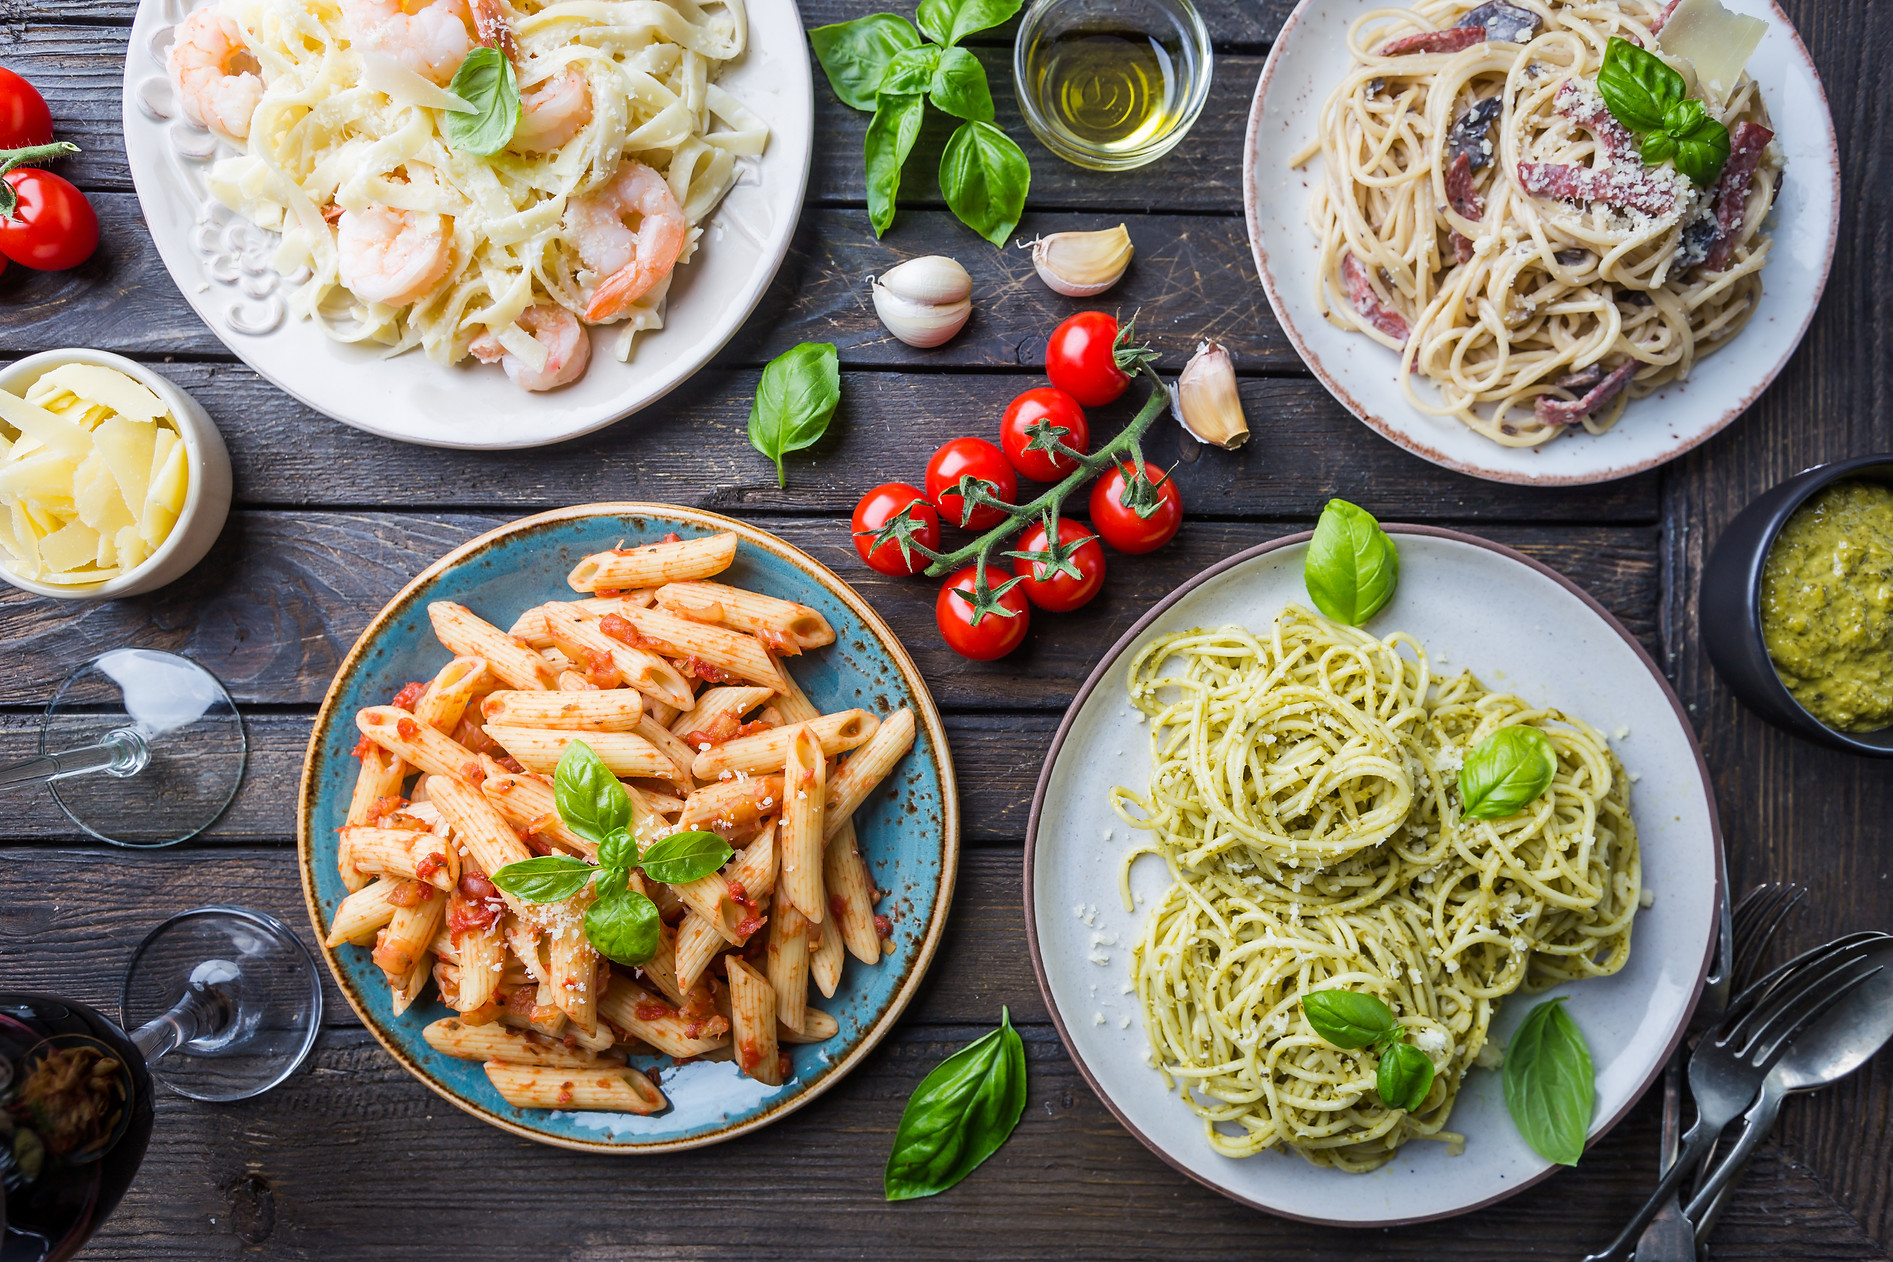 Several plates of pasta with different k